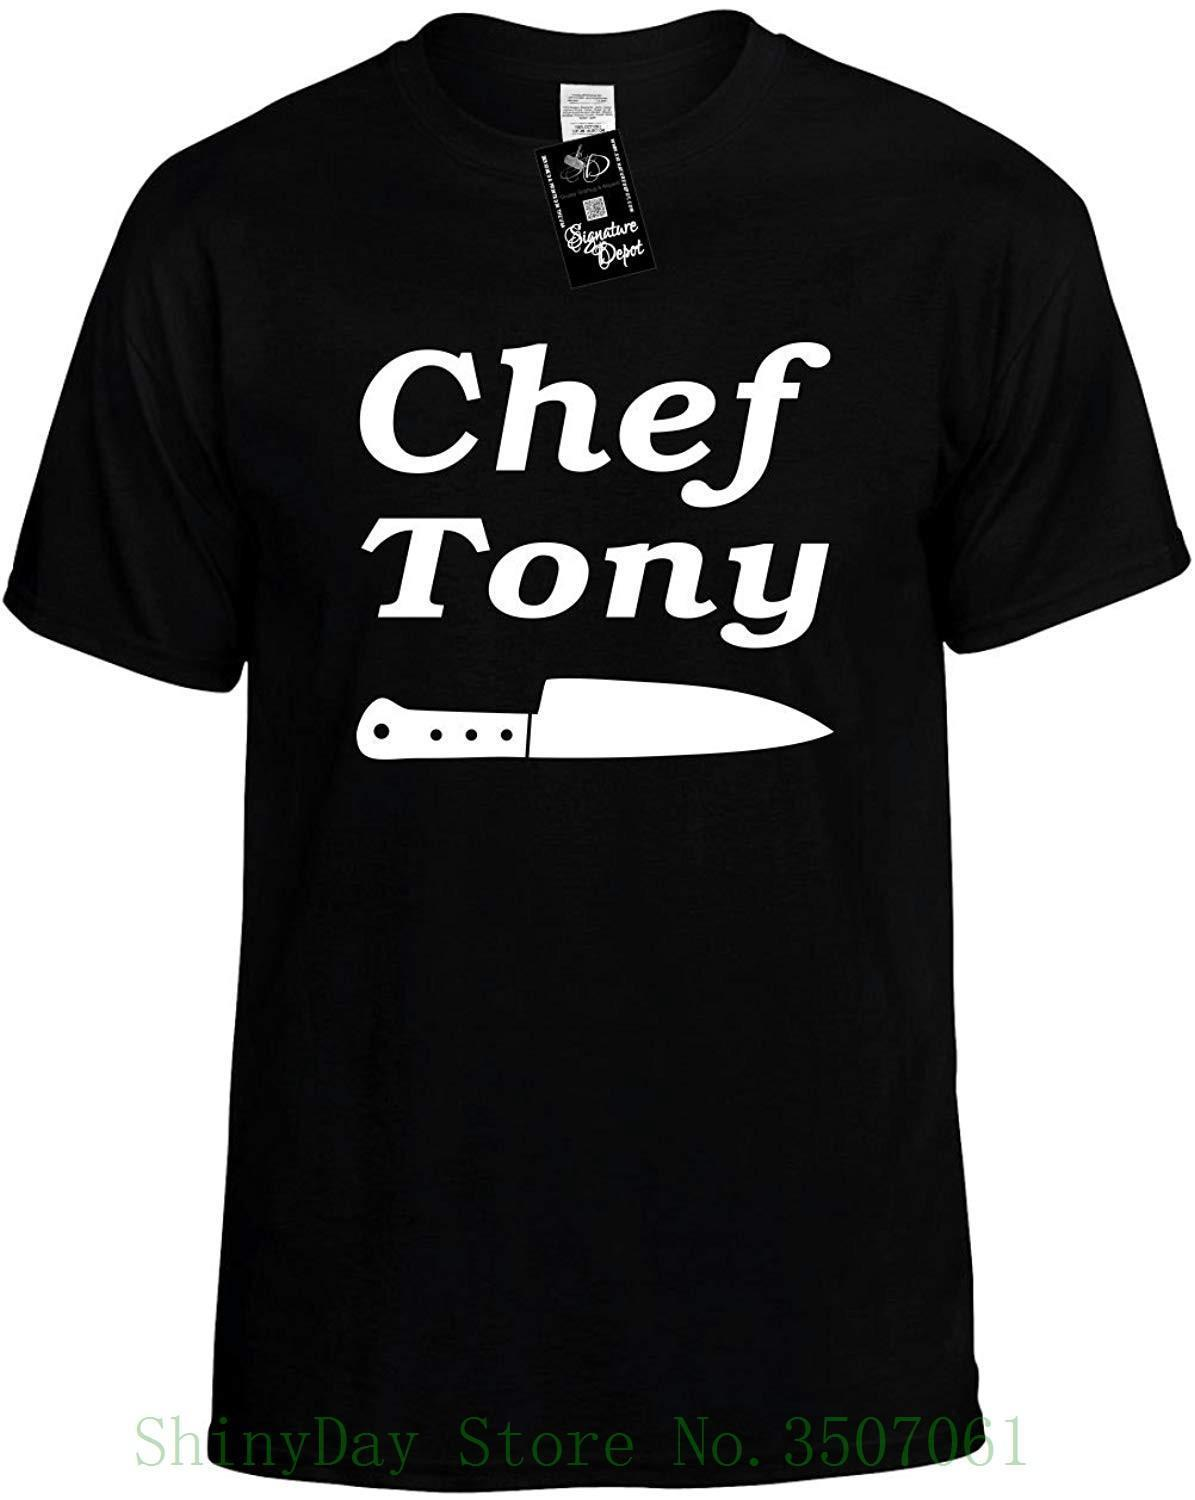 a3010ae8 Mens Funny T Shirt Chef Tony With Knife Food Cook Unisex Tee Cotton Low  Price Top Tee For Teen Girls A Team Shirts Be T Shirts From Amesion86, ...